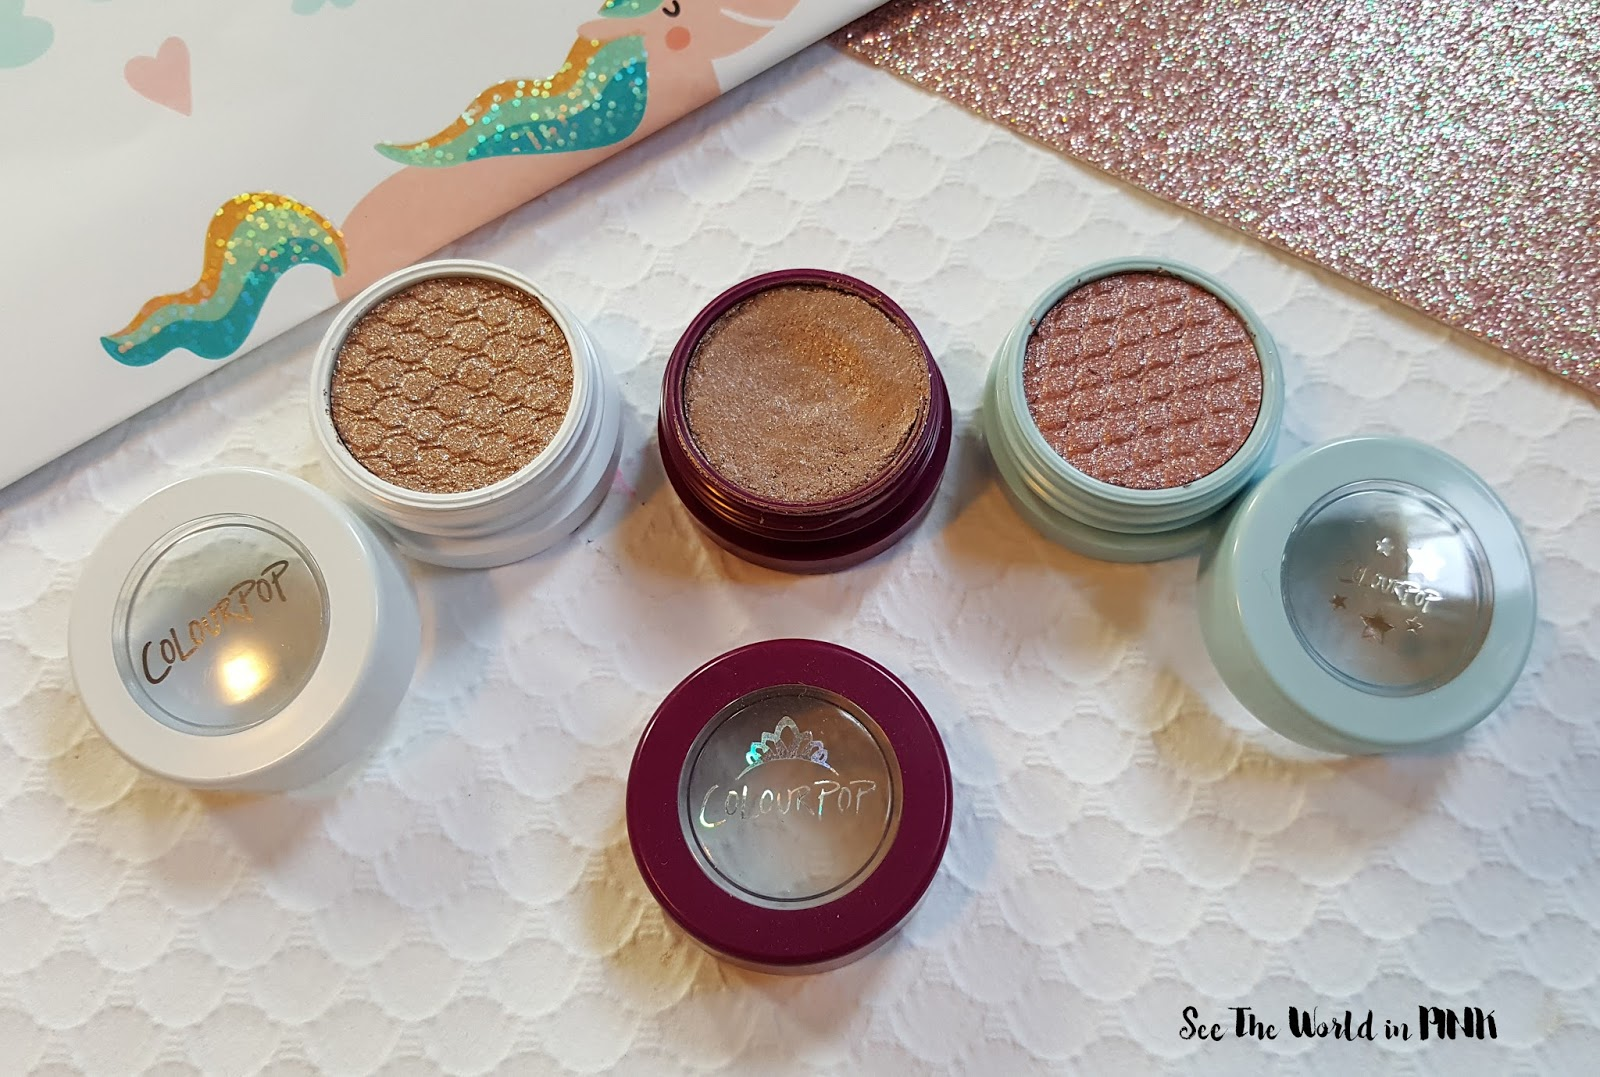 ColourPop Birthday Super Shock Shadows - Birthday Girl, Birthday Boy and Birthday Cake Swatches and Comparison!